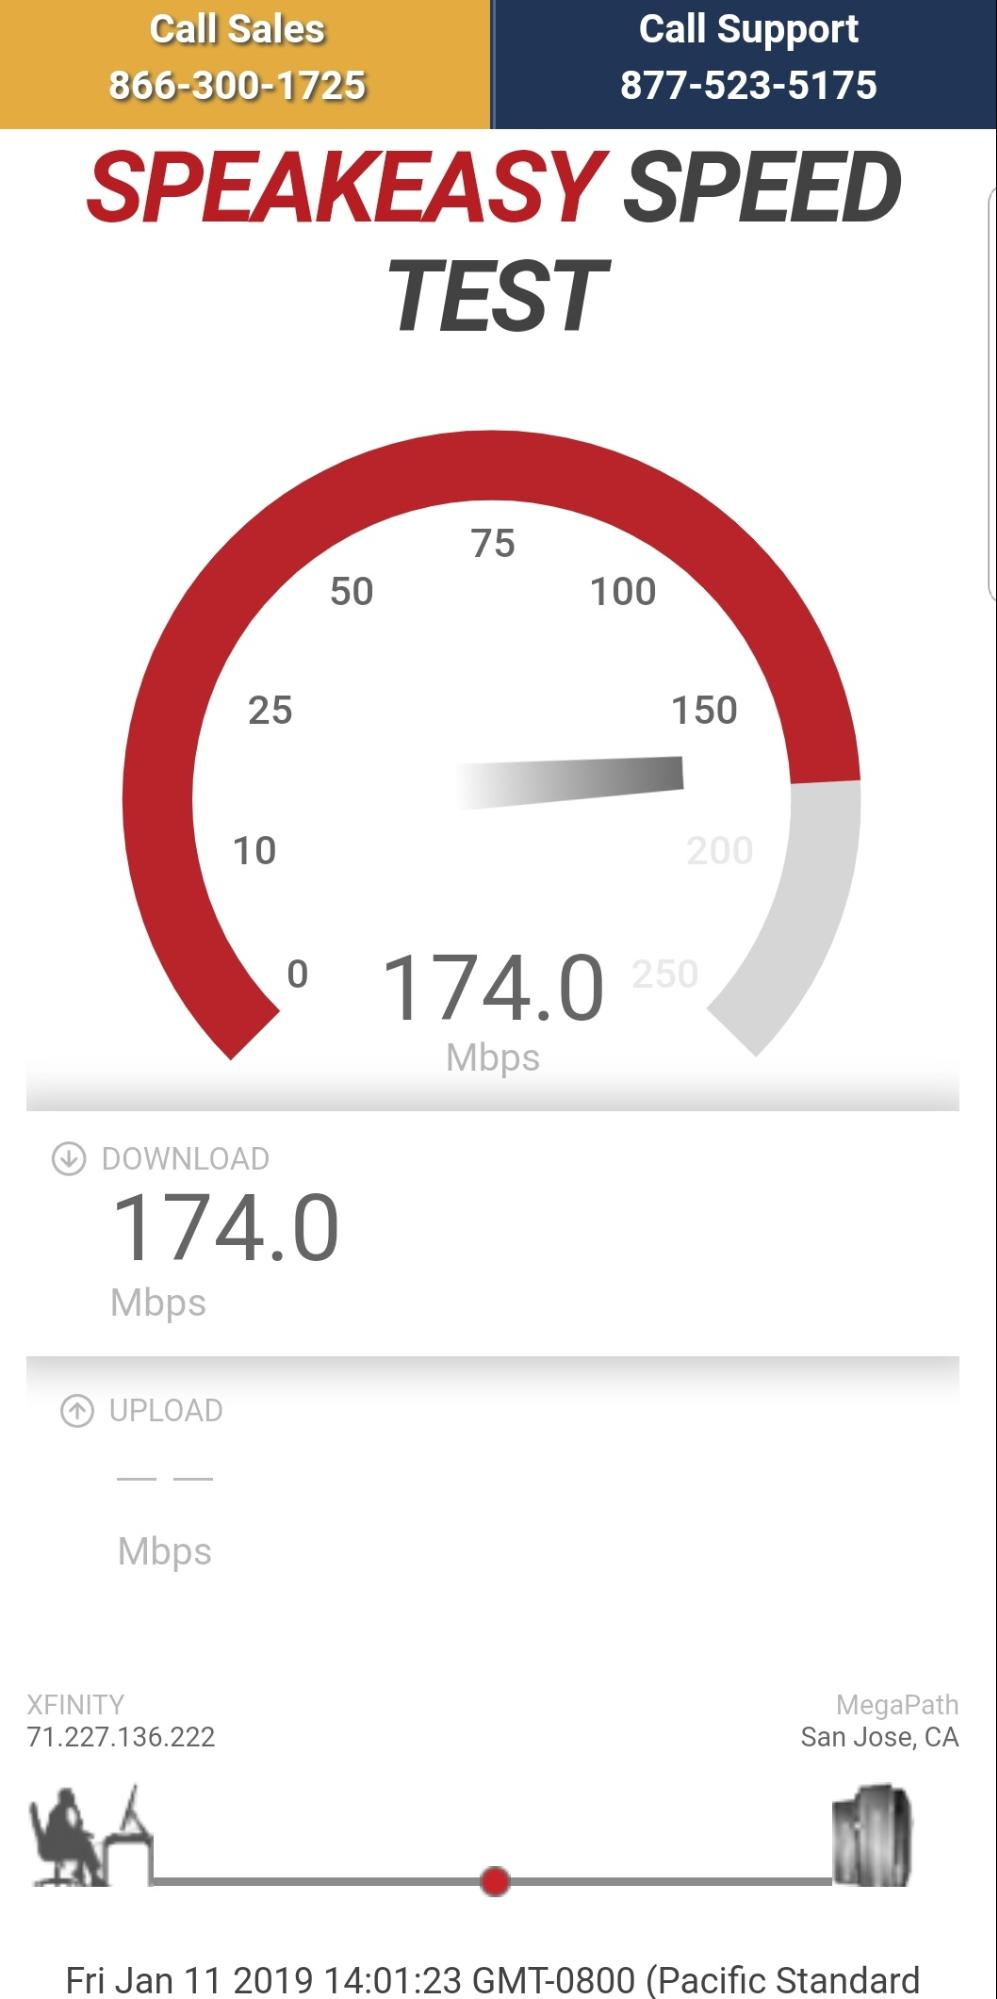 ASpeakeasy Speed Test on Mobile